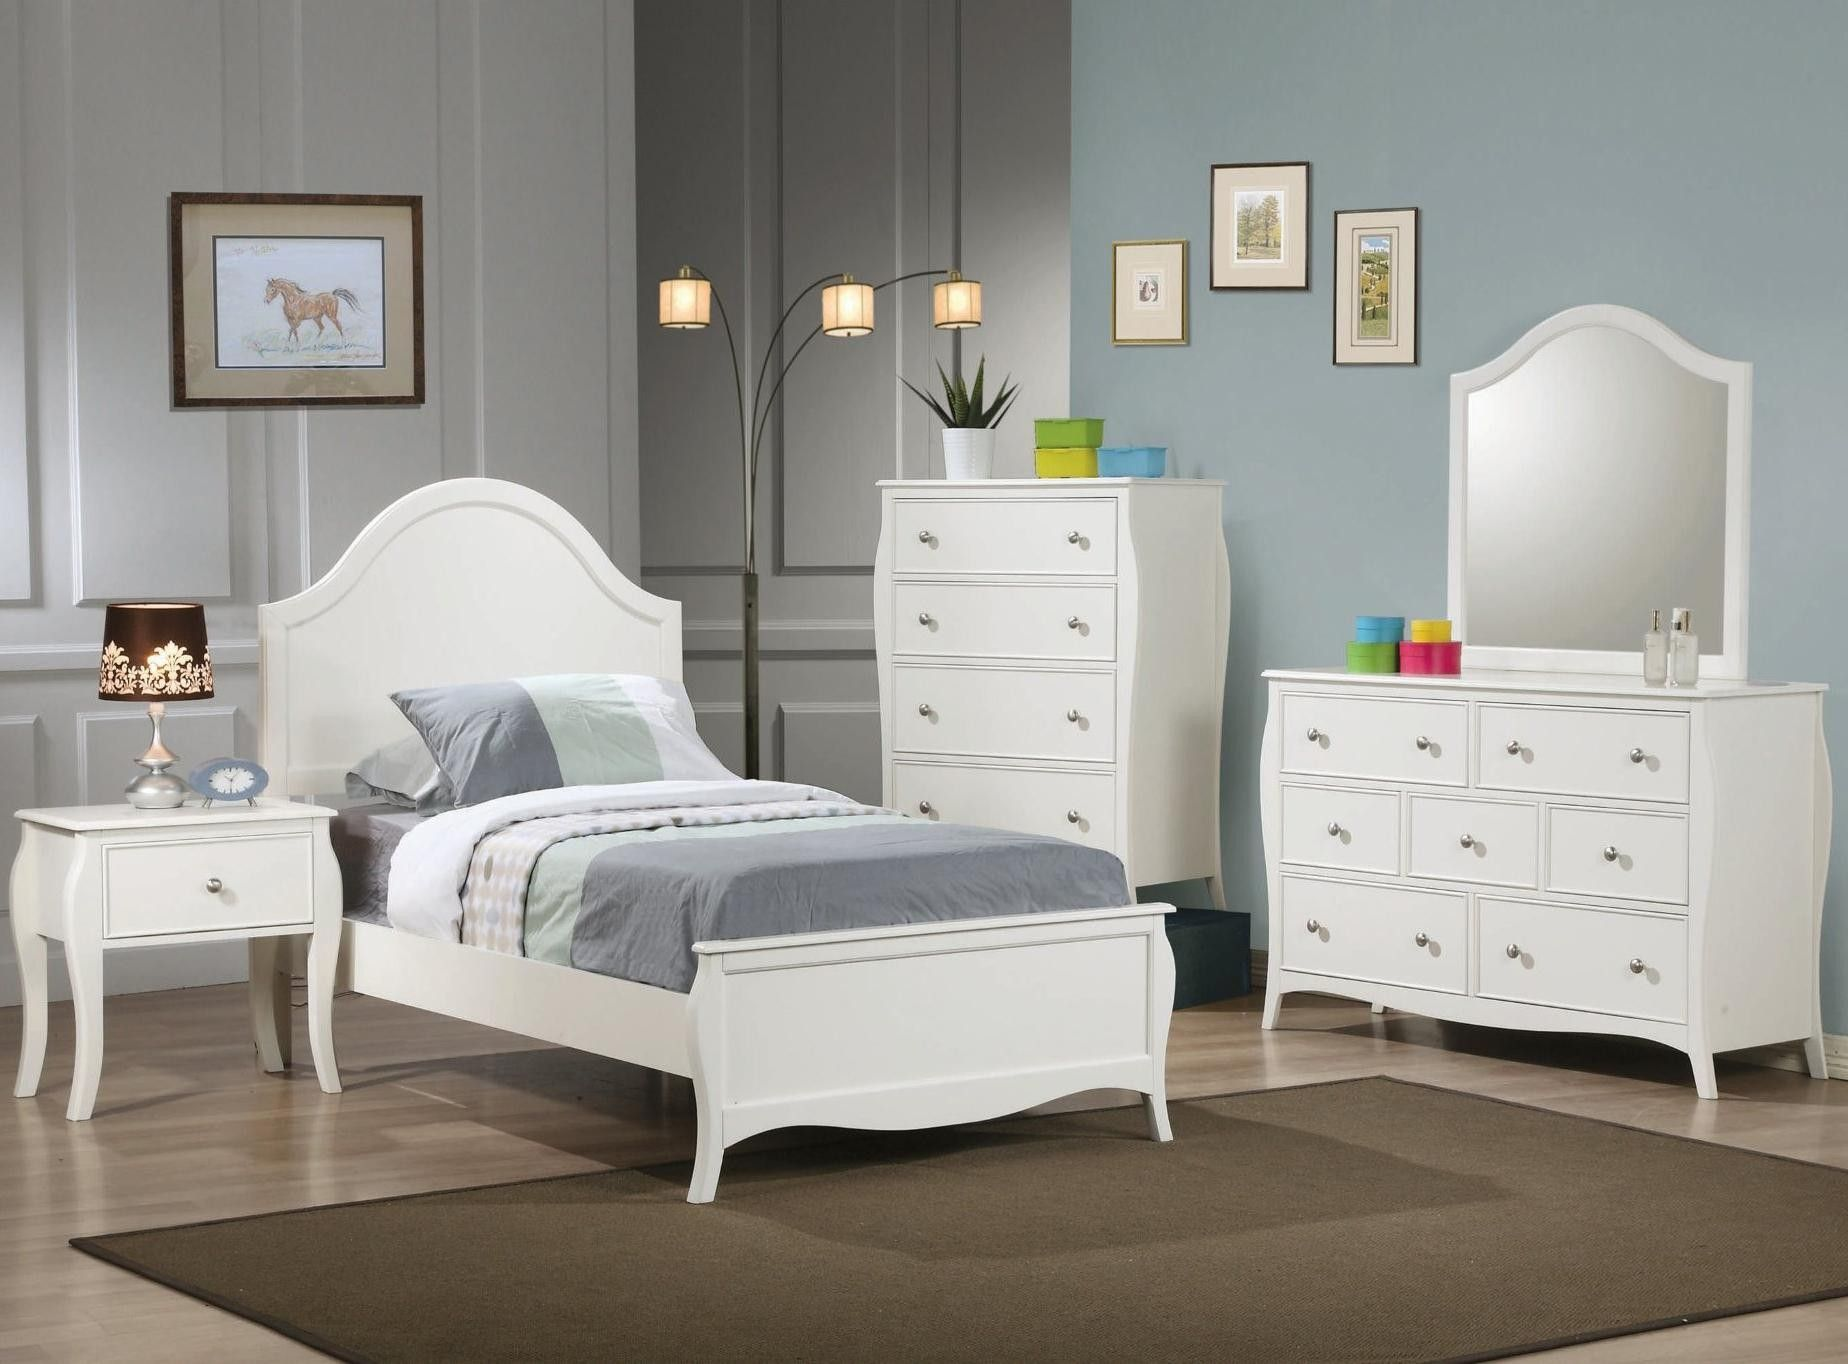 Coaster 400561F S4 Dominique White 4 Pcs Full Bedroom Set Baby